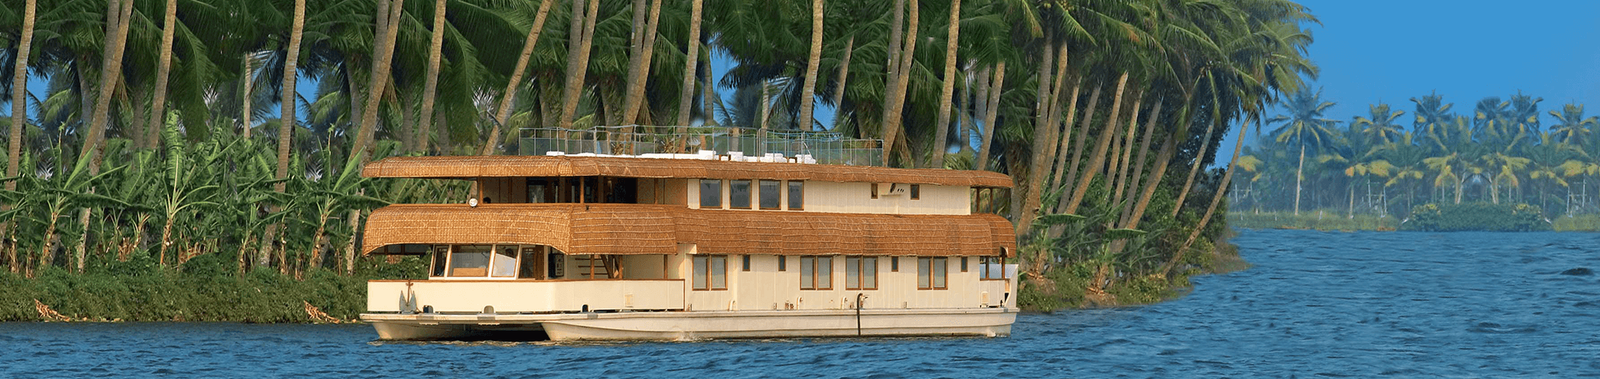 Enjoy a luxury houseboat cruise on a tailor-made holiday to Kerala